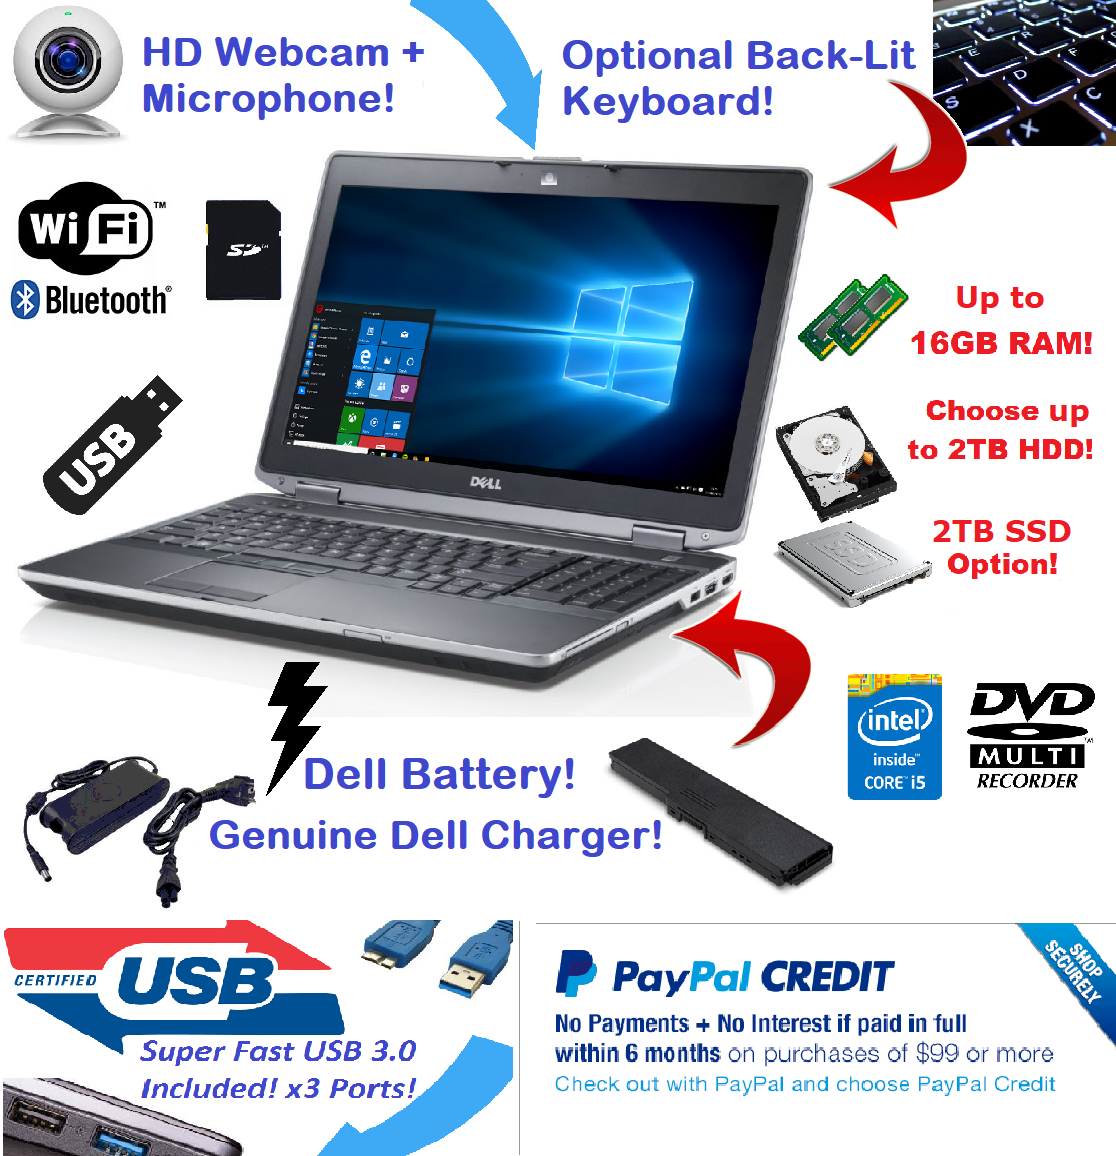 "Laptop Windows - Dell Latitude Laptop 15.6"" Intel i5 2TB SSD 🚩16GB RAM 🎮 WiFI HDMI + Win 10 Pro"